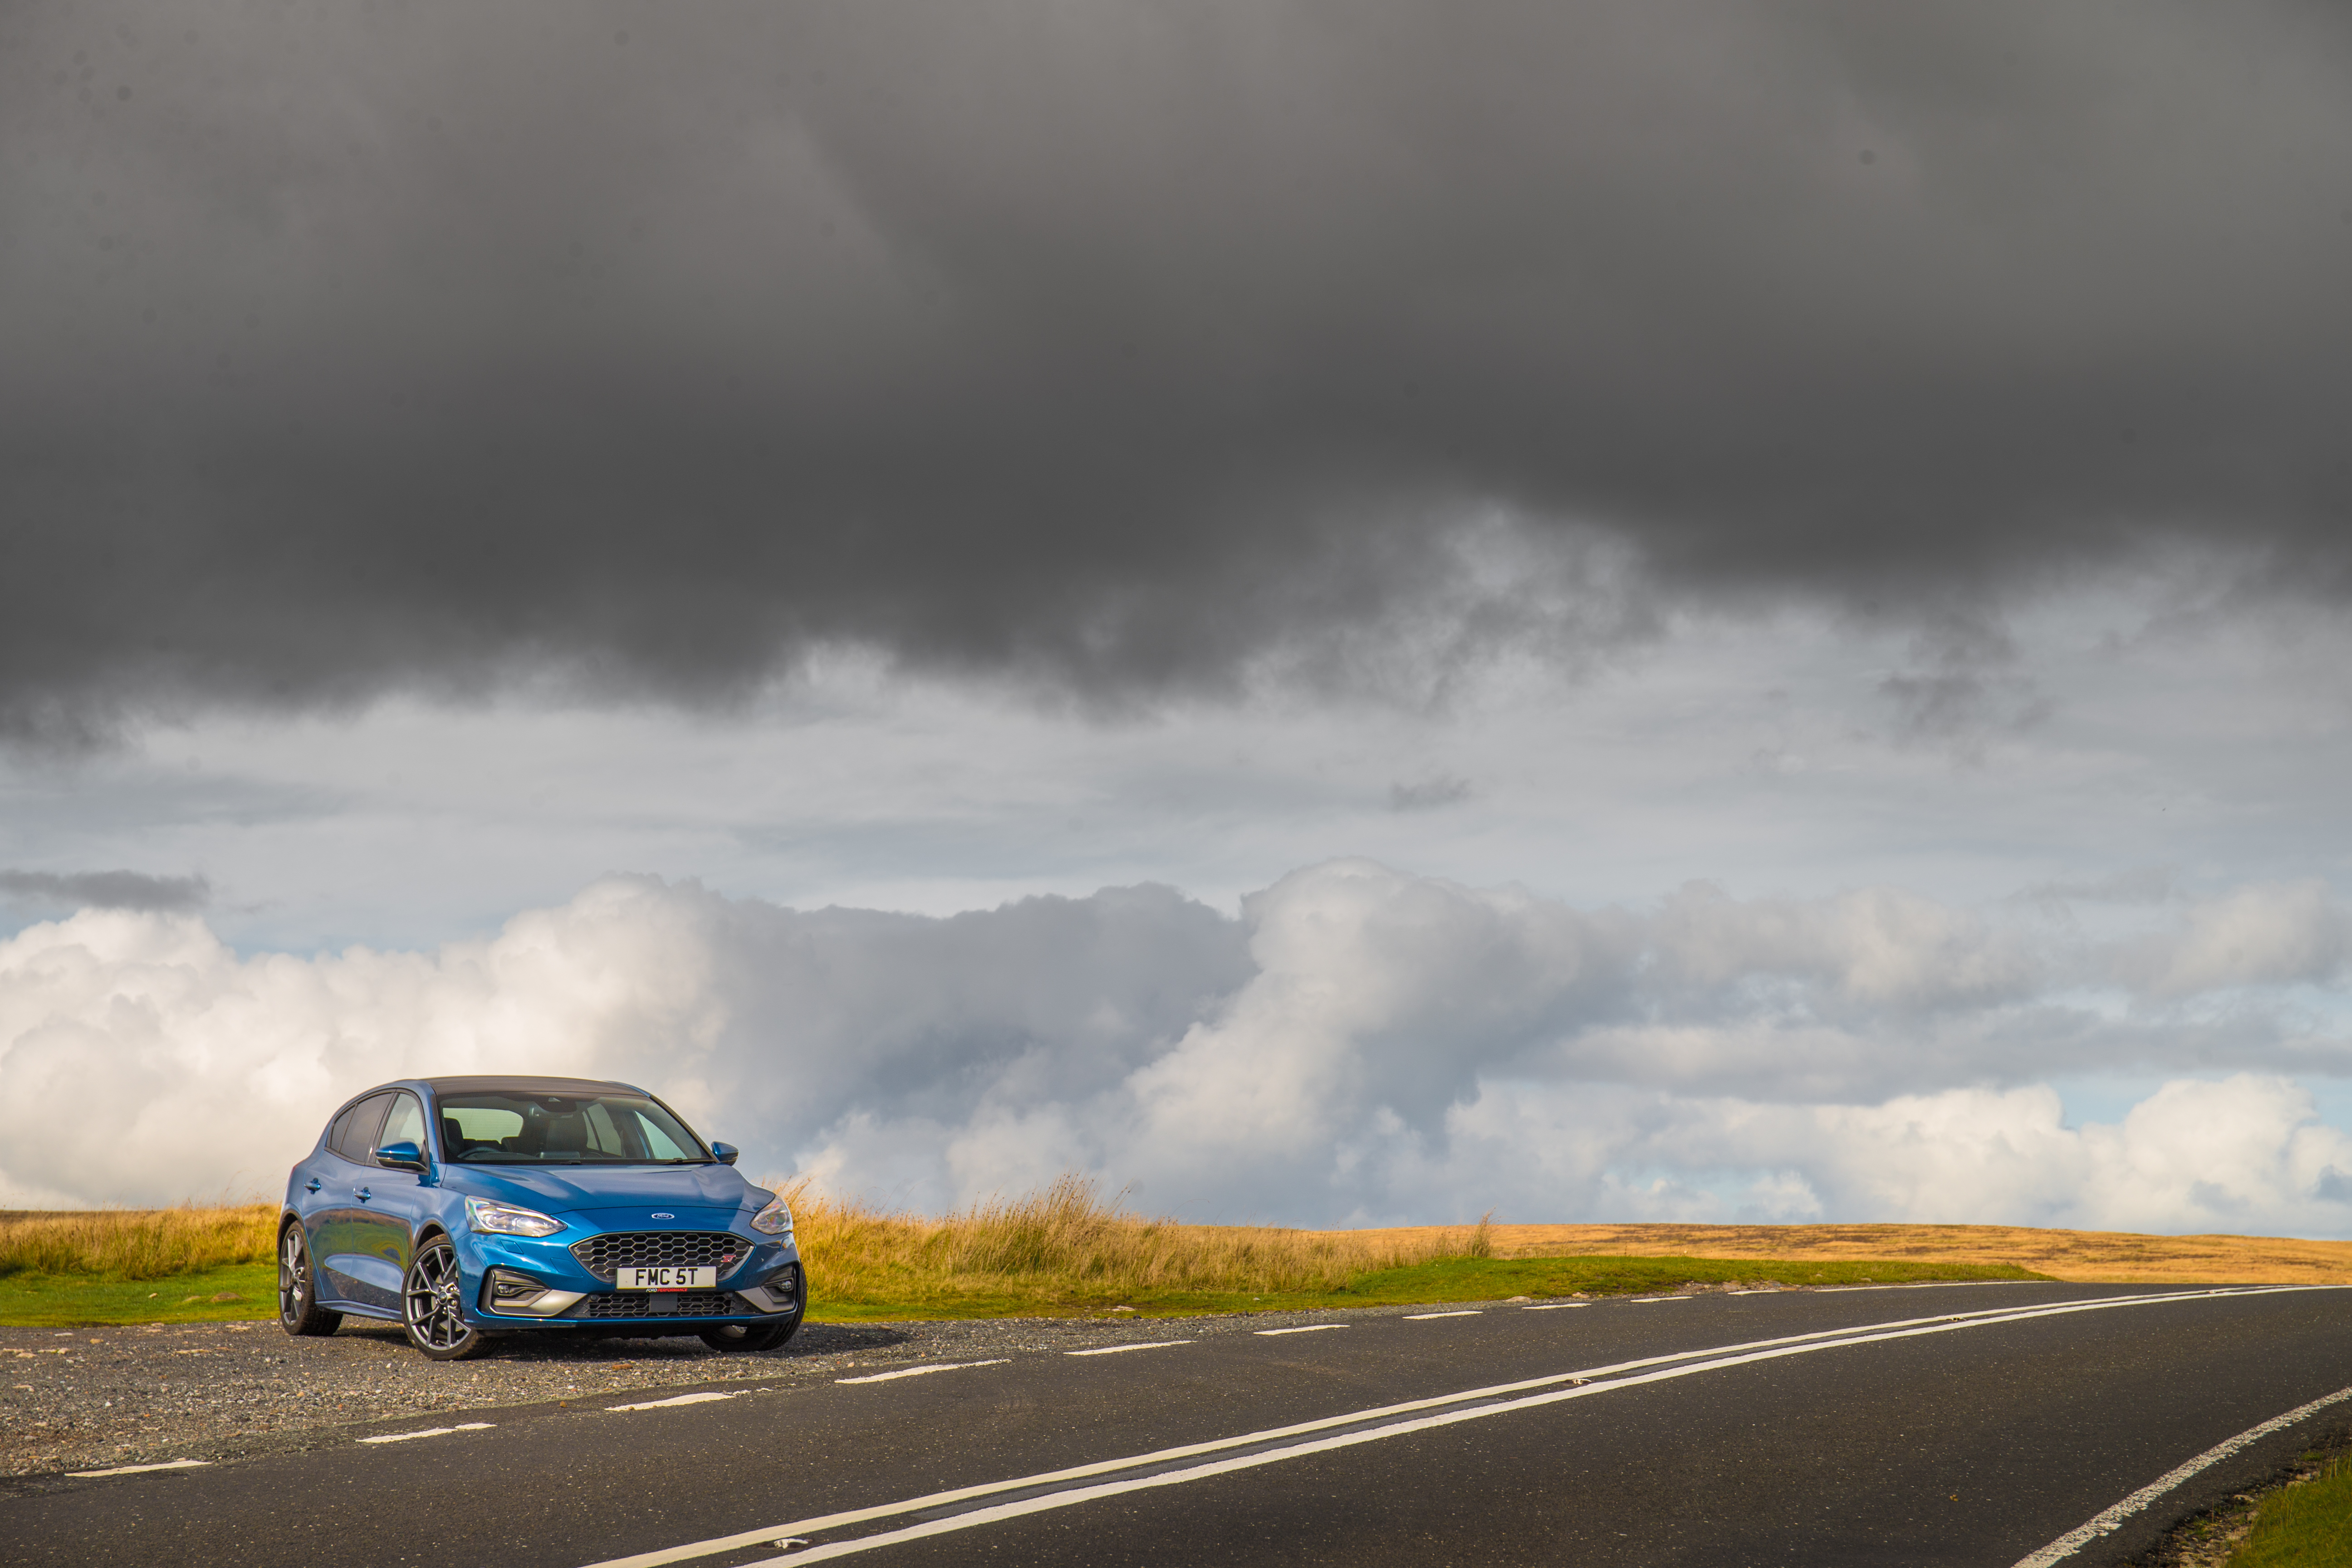 The Focus ST is well suited to UK b-roads